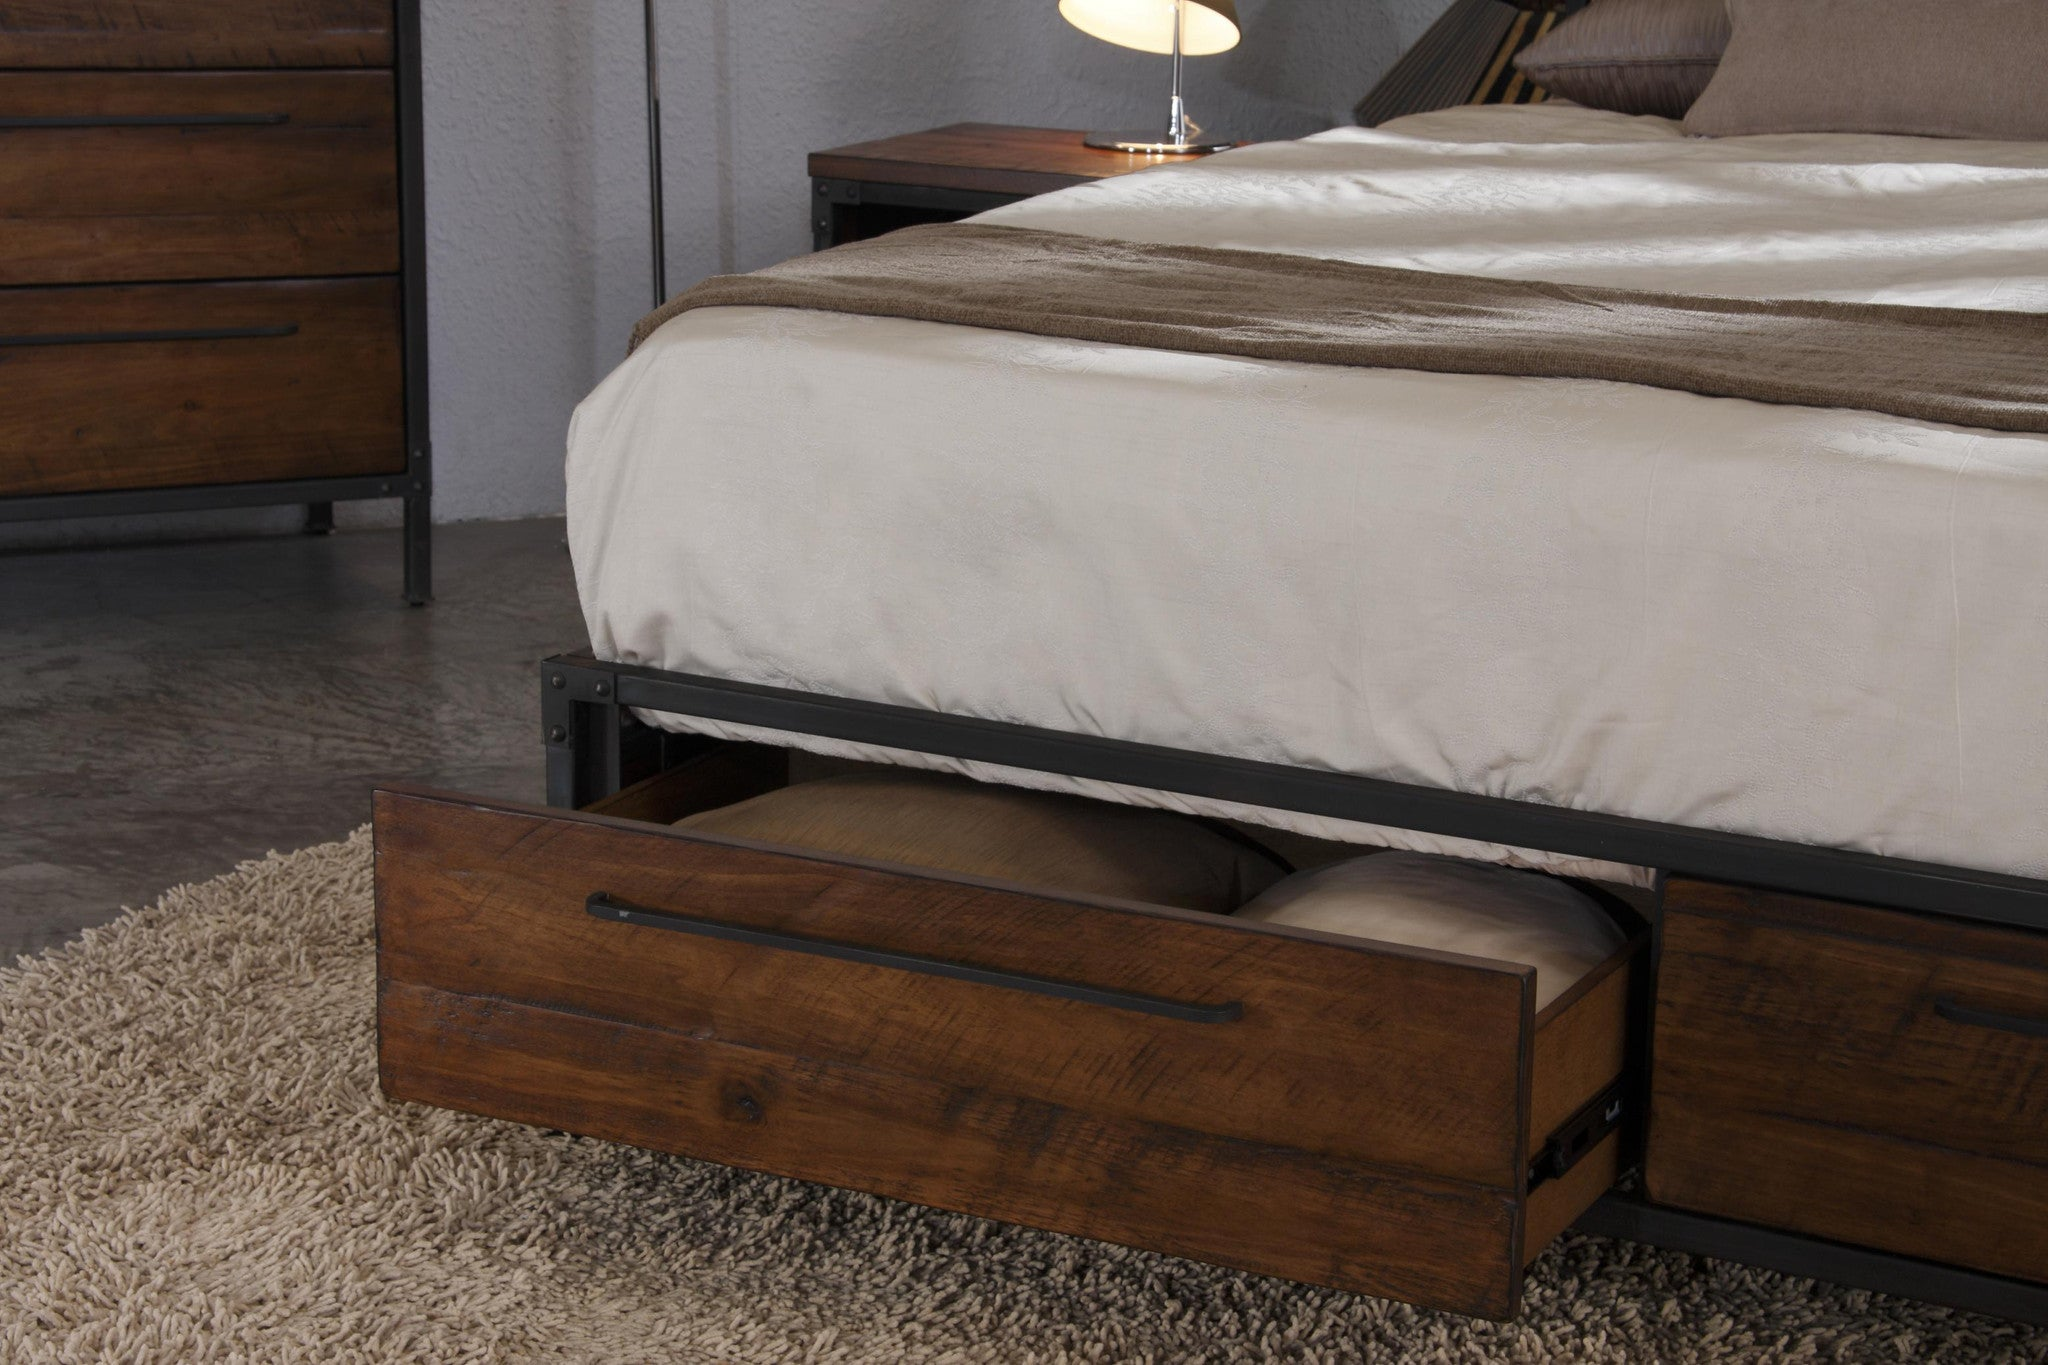 Chicago Solid Wood Queen Bed With Drawers Picket Rail Singapore S No 1 Premium Solid Wood Furniture Custom Lifestyle Retailer